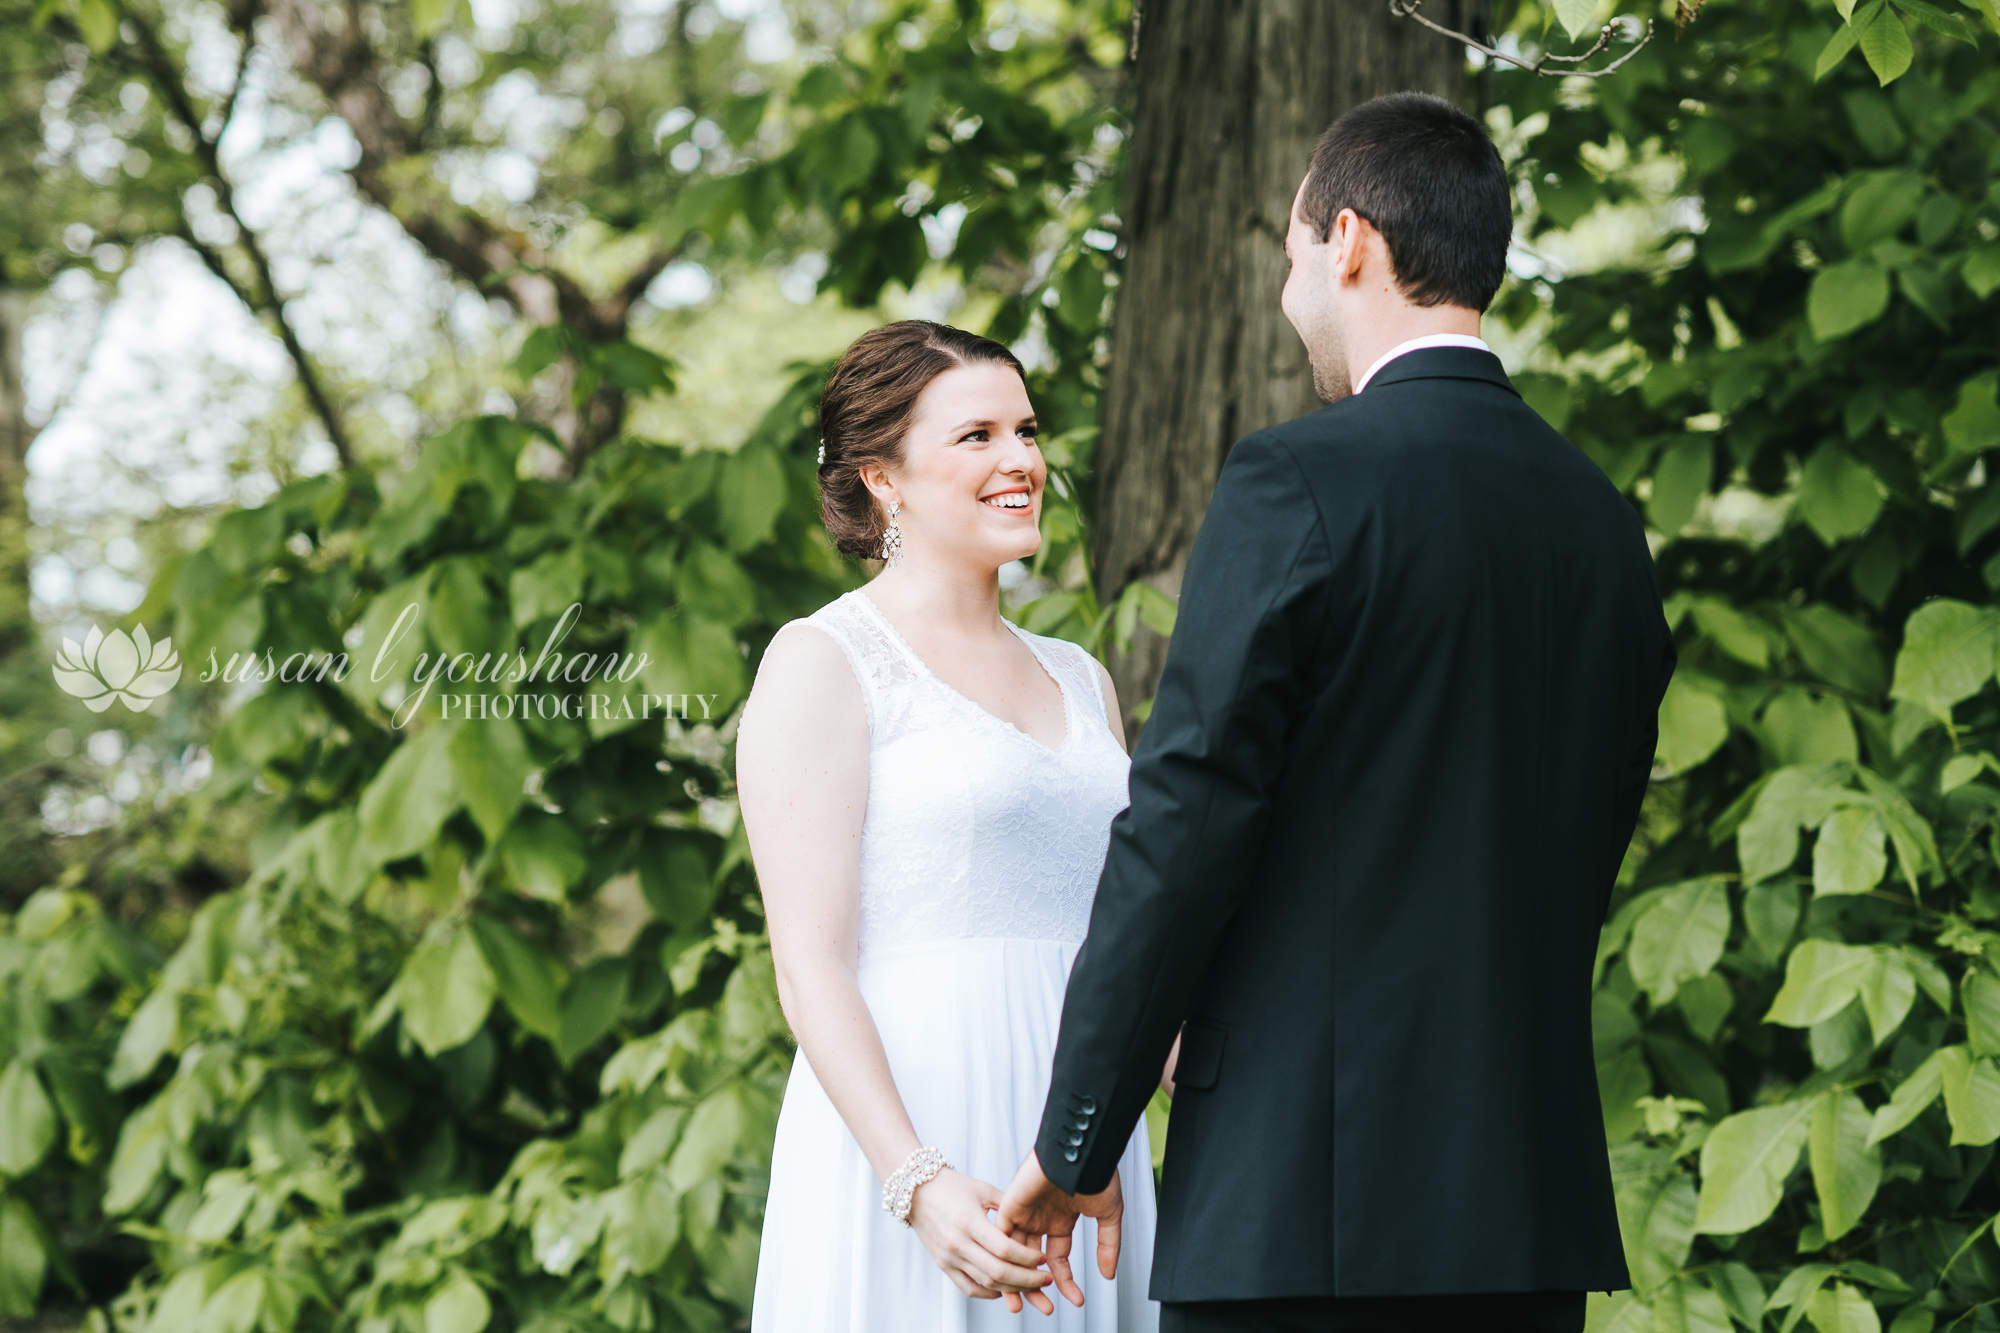 Adena and  Erik Wedding 05-17-2019 SLY Photography-21.jpg